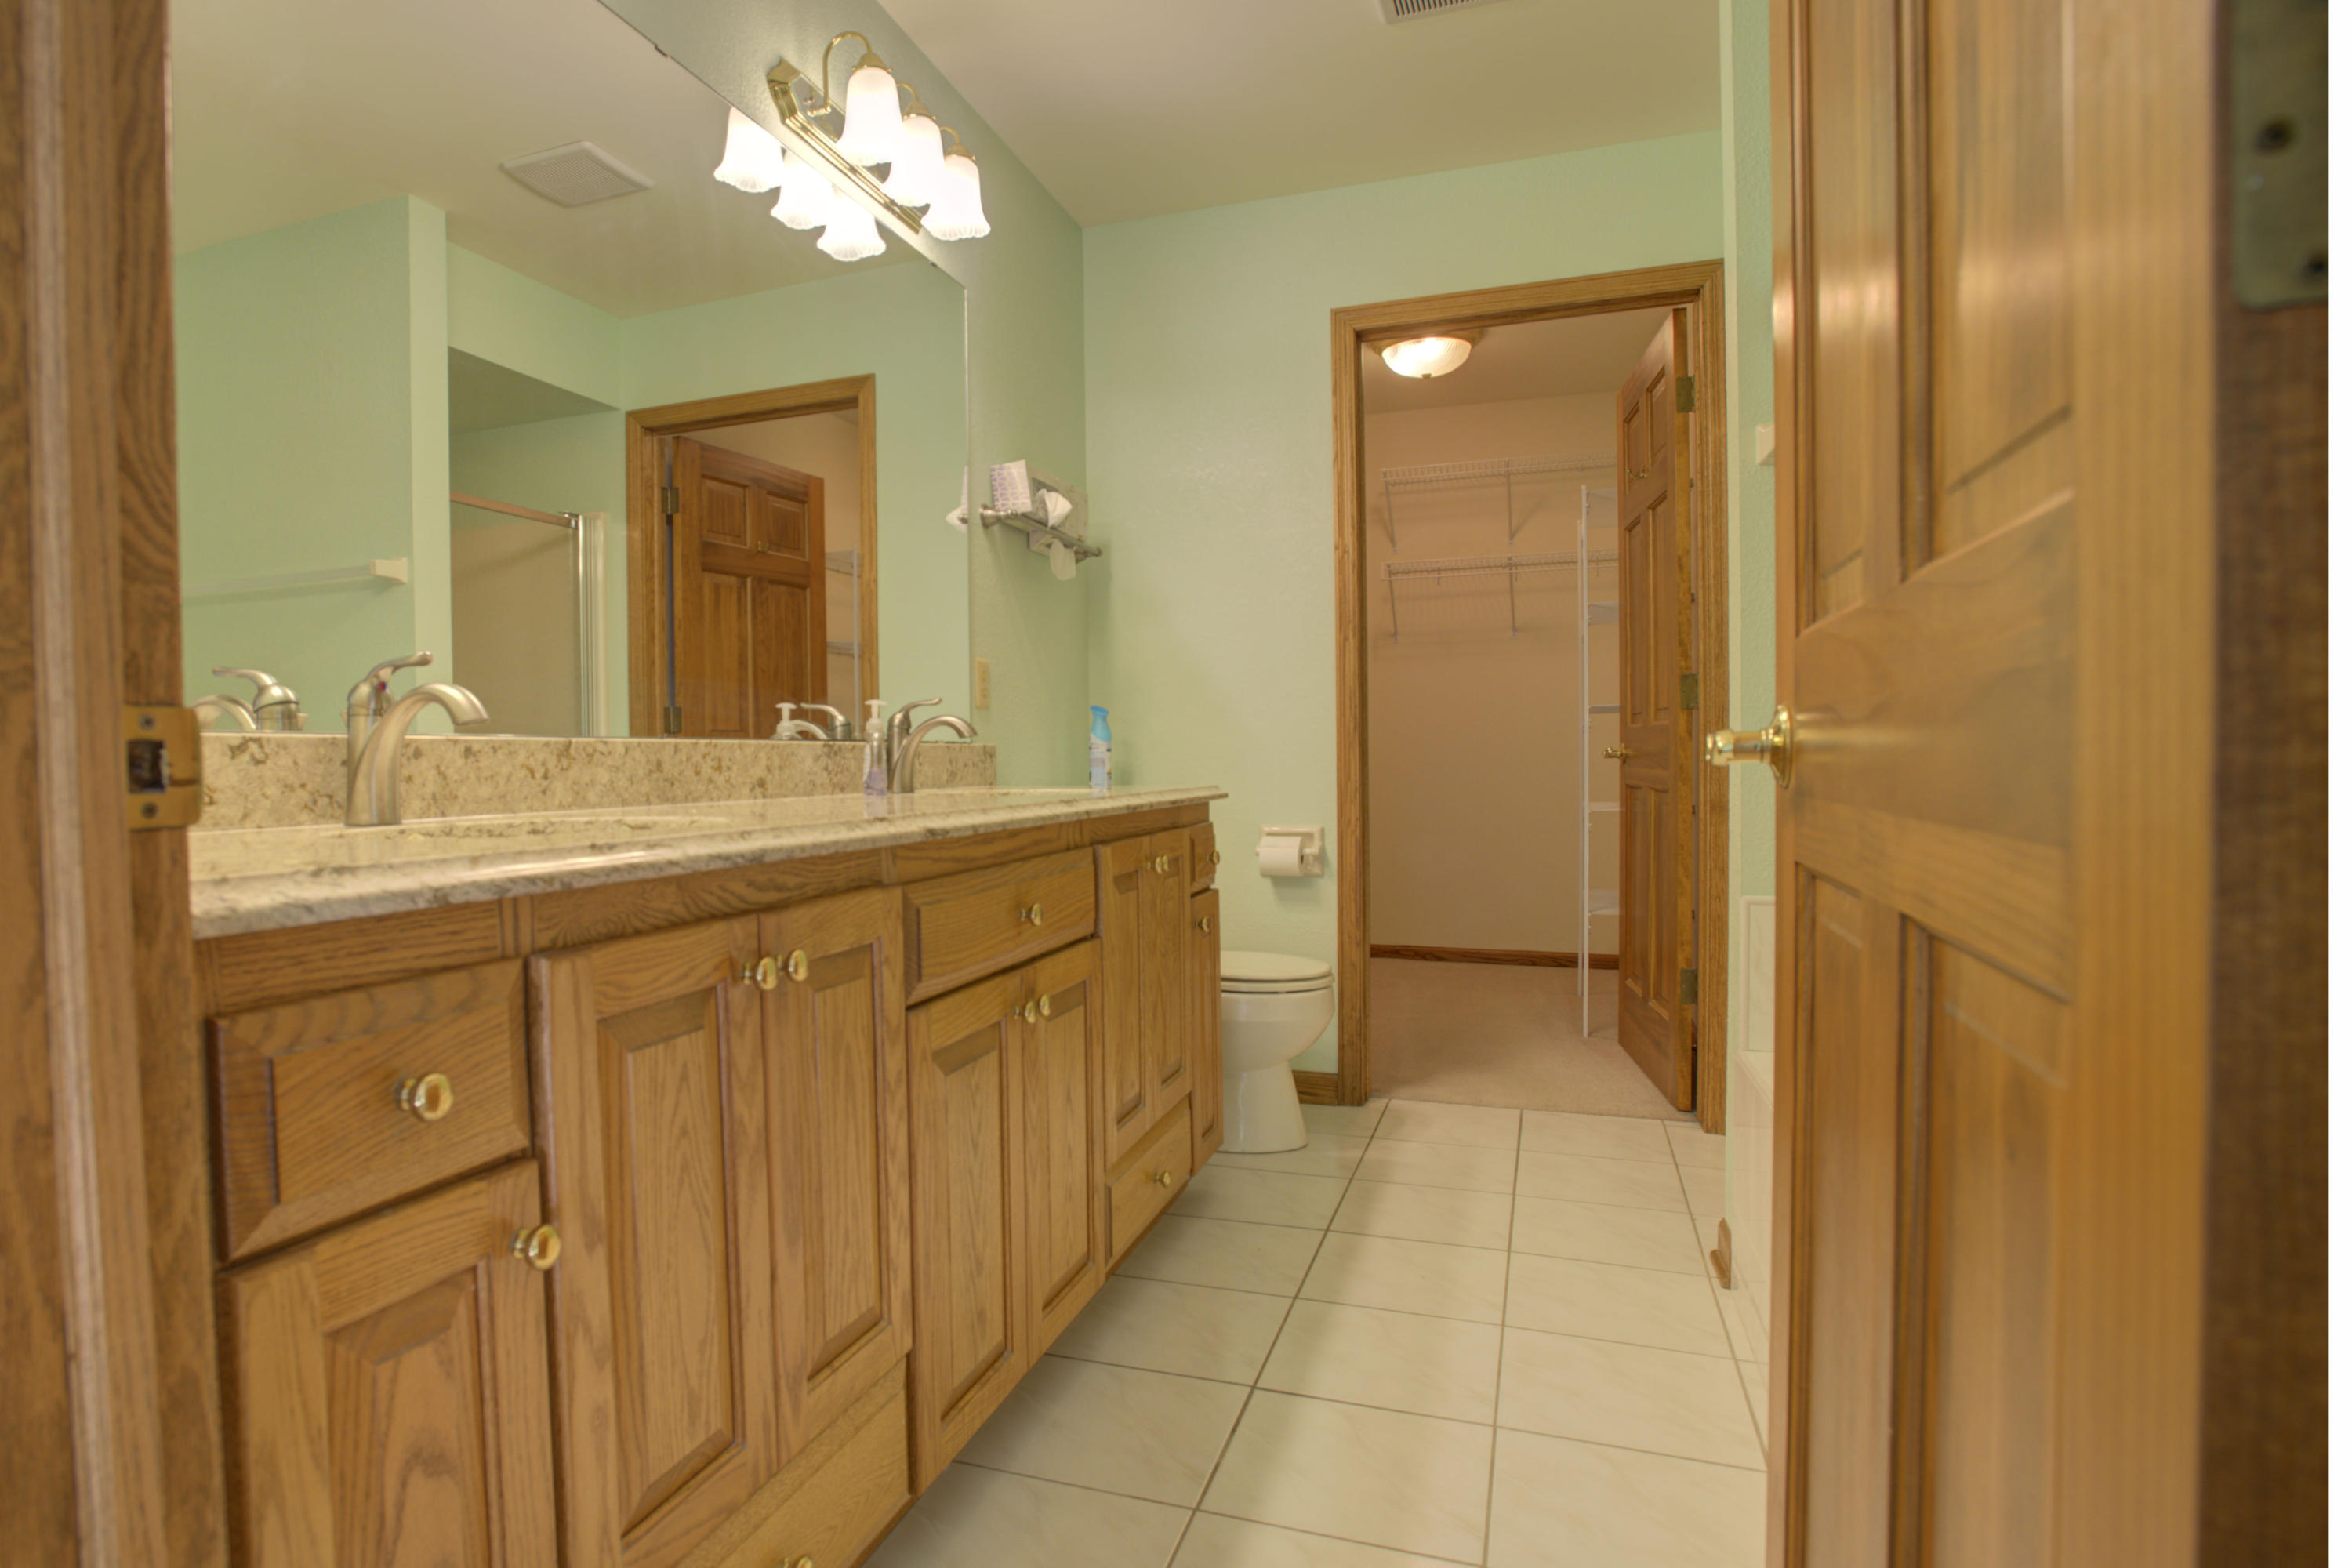 19475 Stonehedge Dr, Brookfield, Wisconsin 53045, 2 Bedrooms Bedrooms, ,2 BathroomsBathrooms,Condominiums,For Sale,Stonehedge Dr,1,1715592